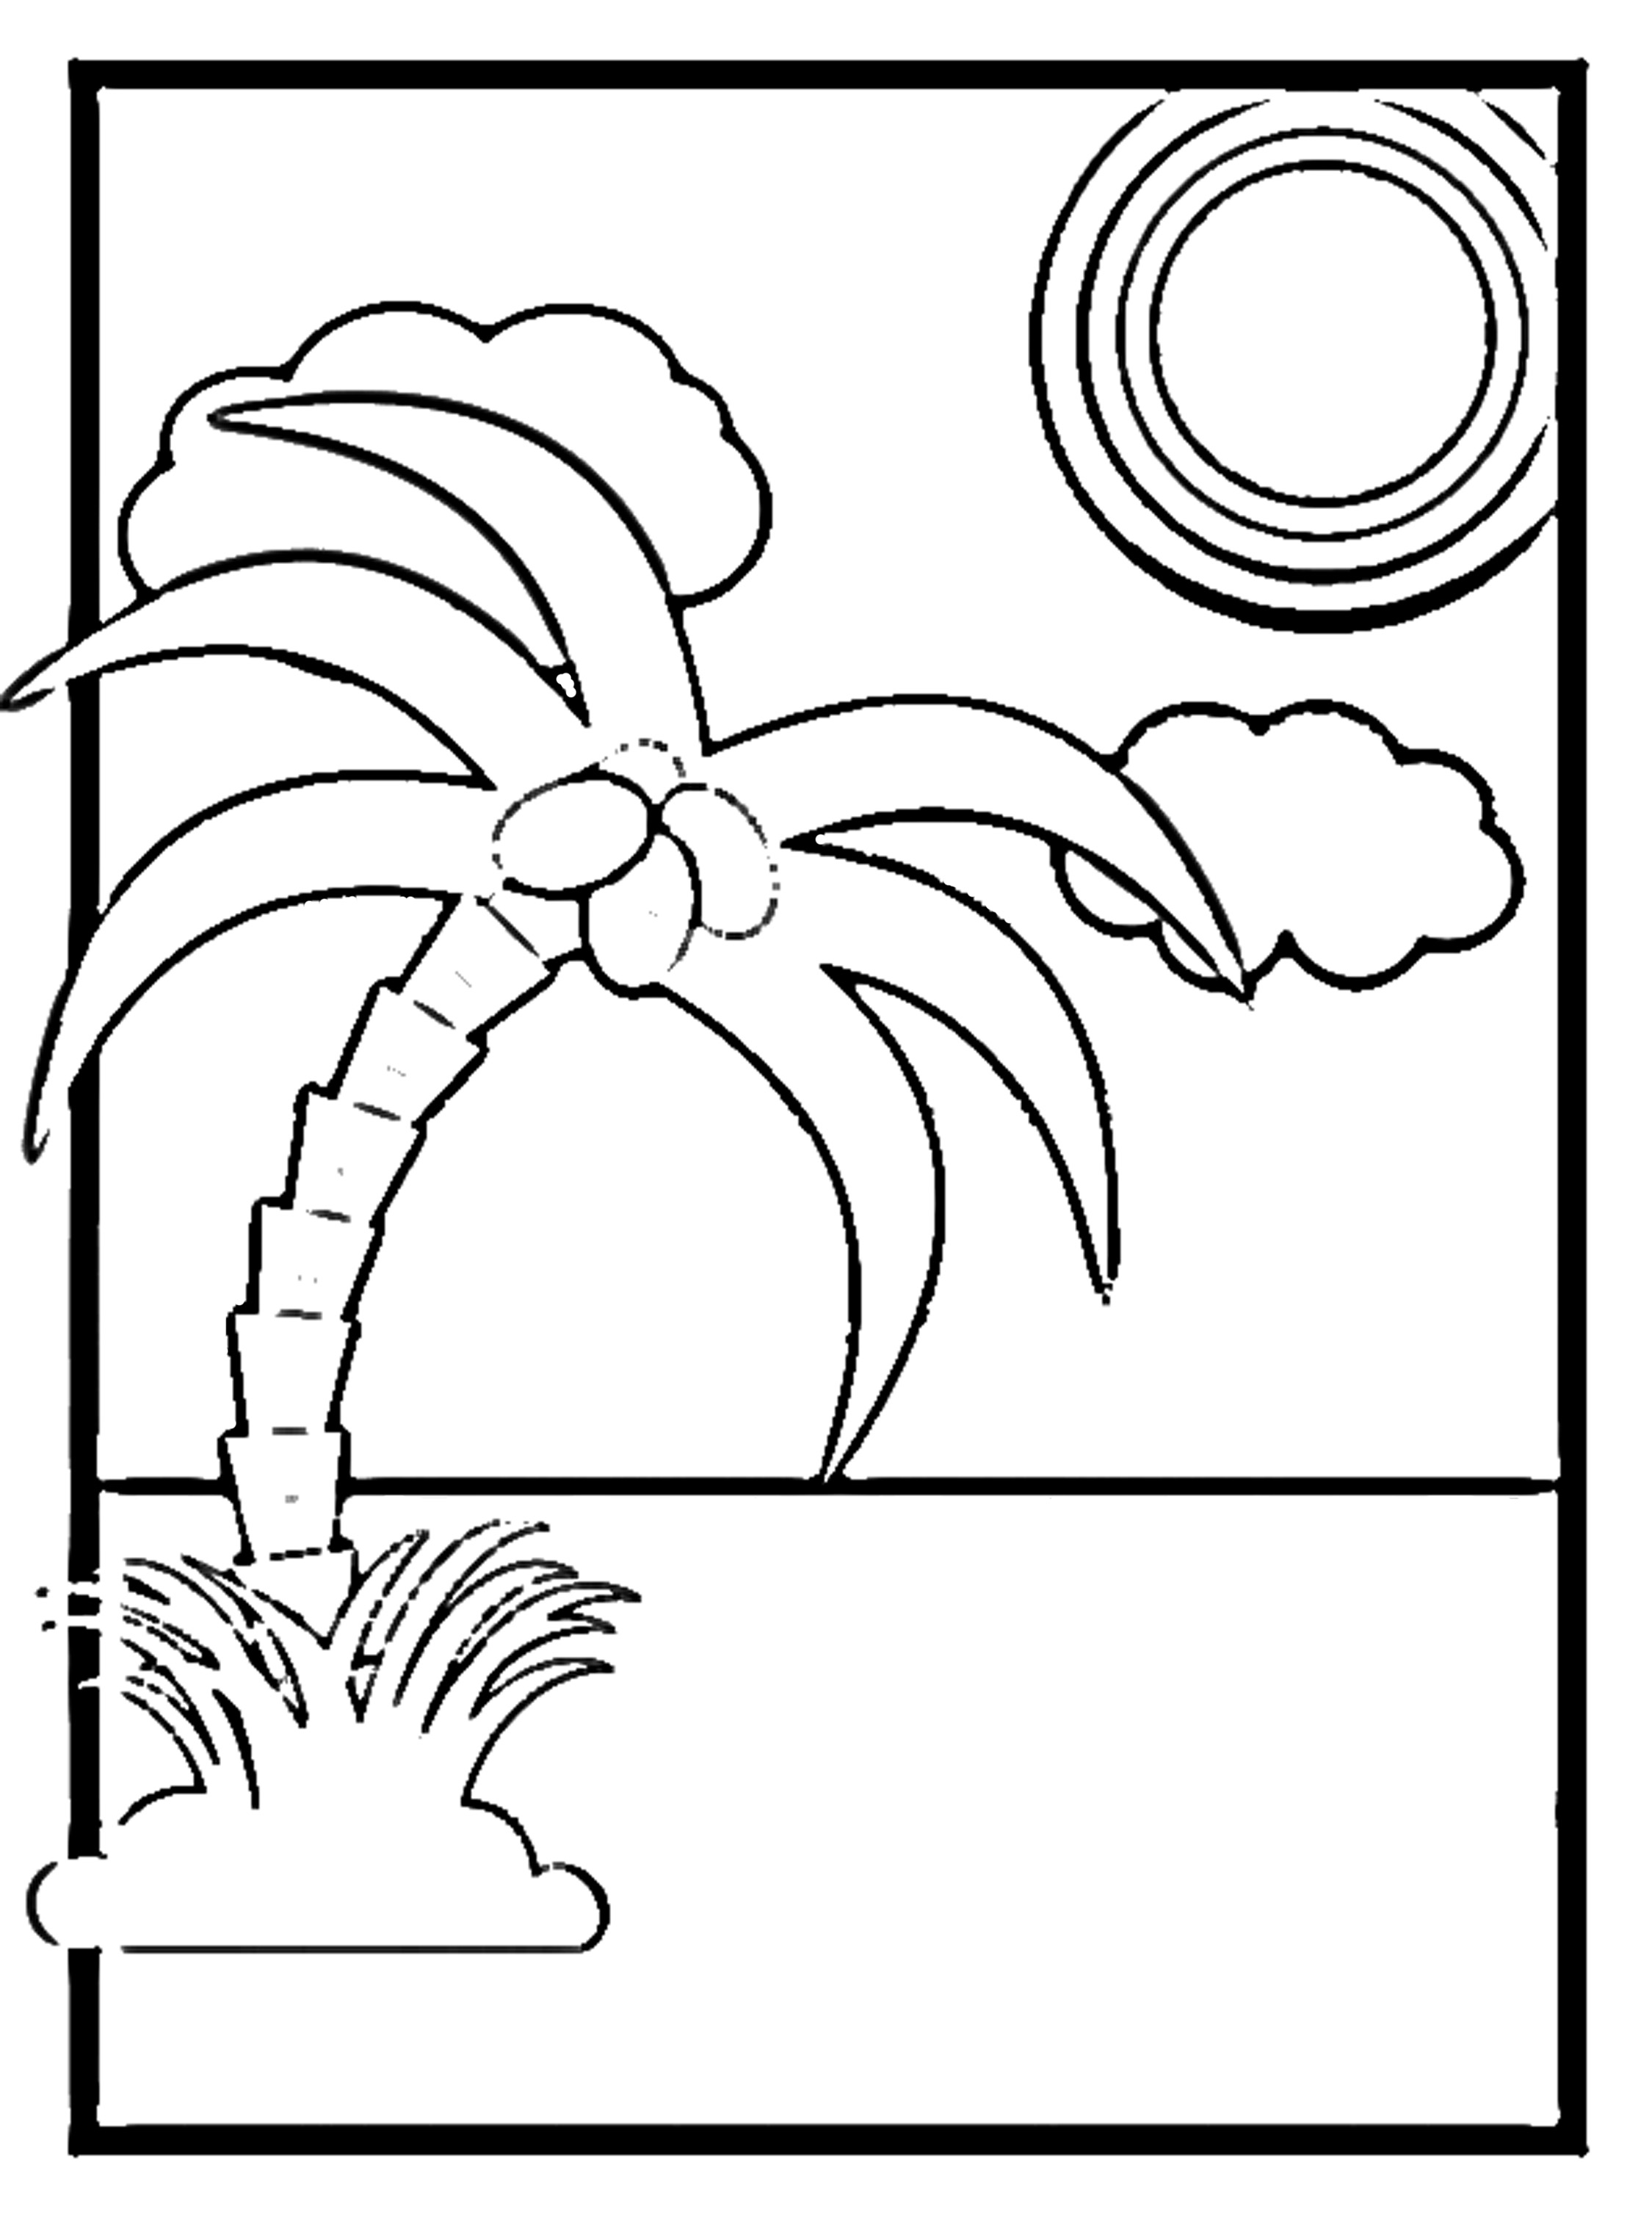 100 chicka chicka boom boom coloring pages free lego coloring pages fablesfromthefriends